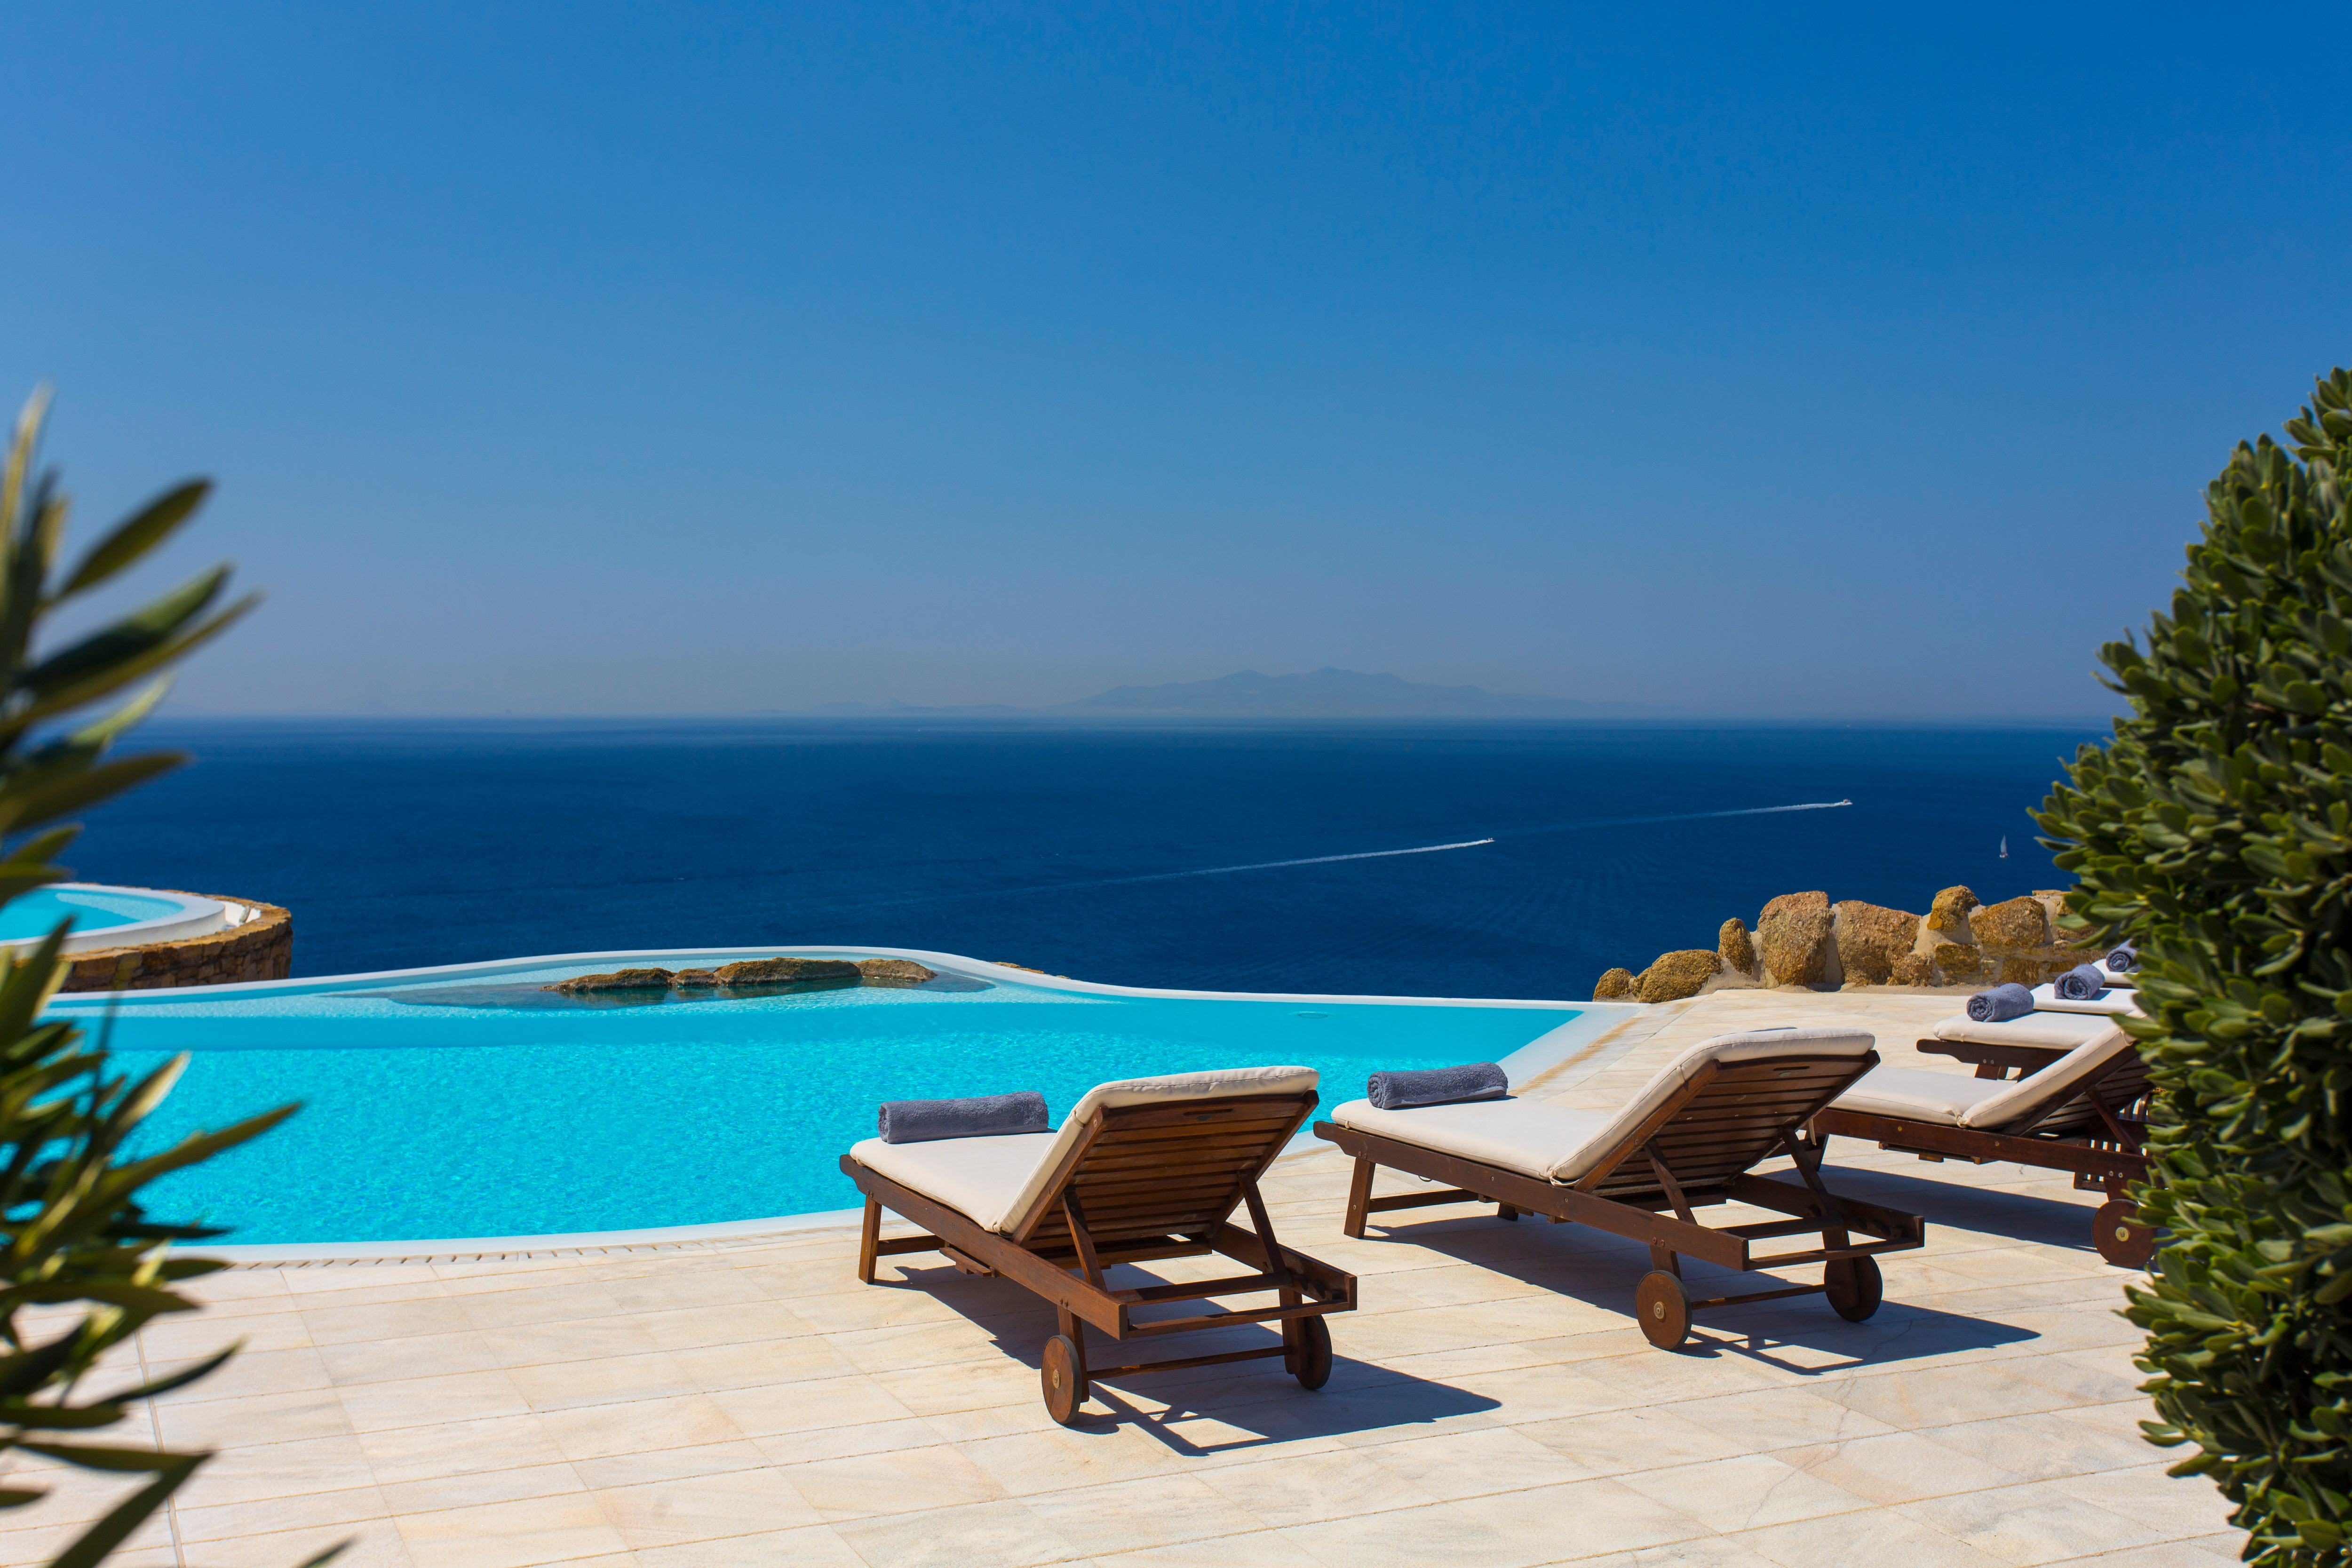 Property Image 2 - Modern Minimal Villa with Infinity Pool and Panoramic view